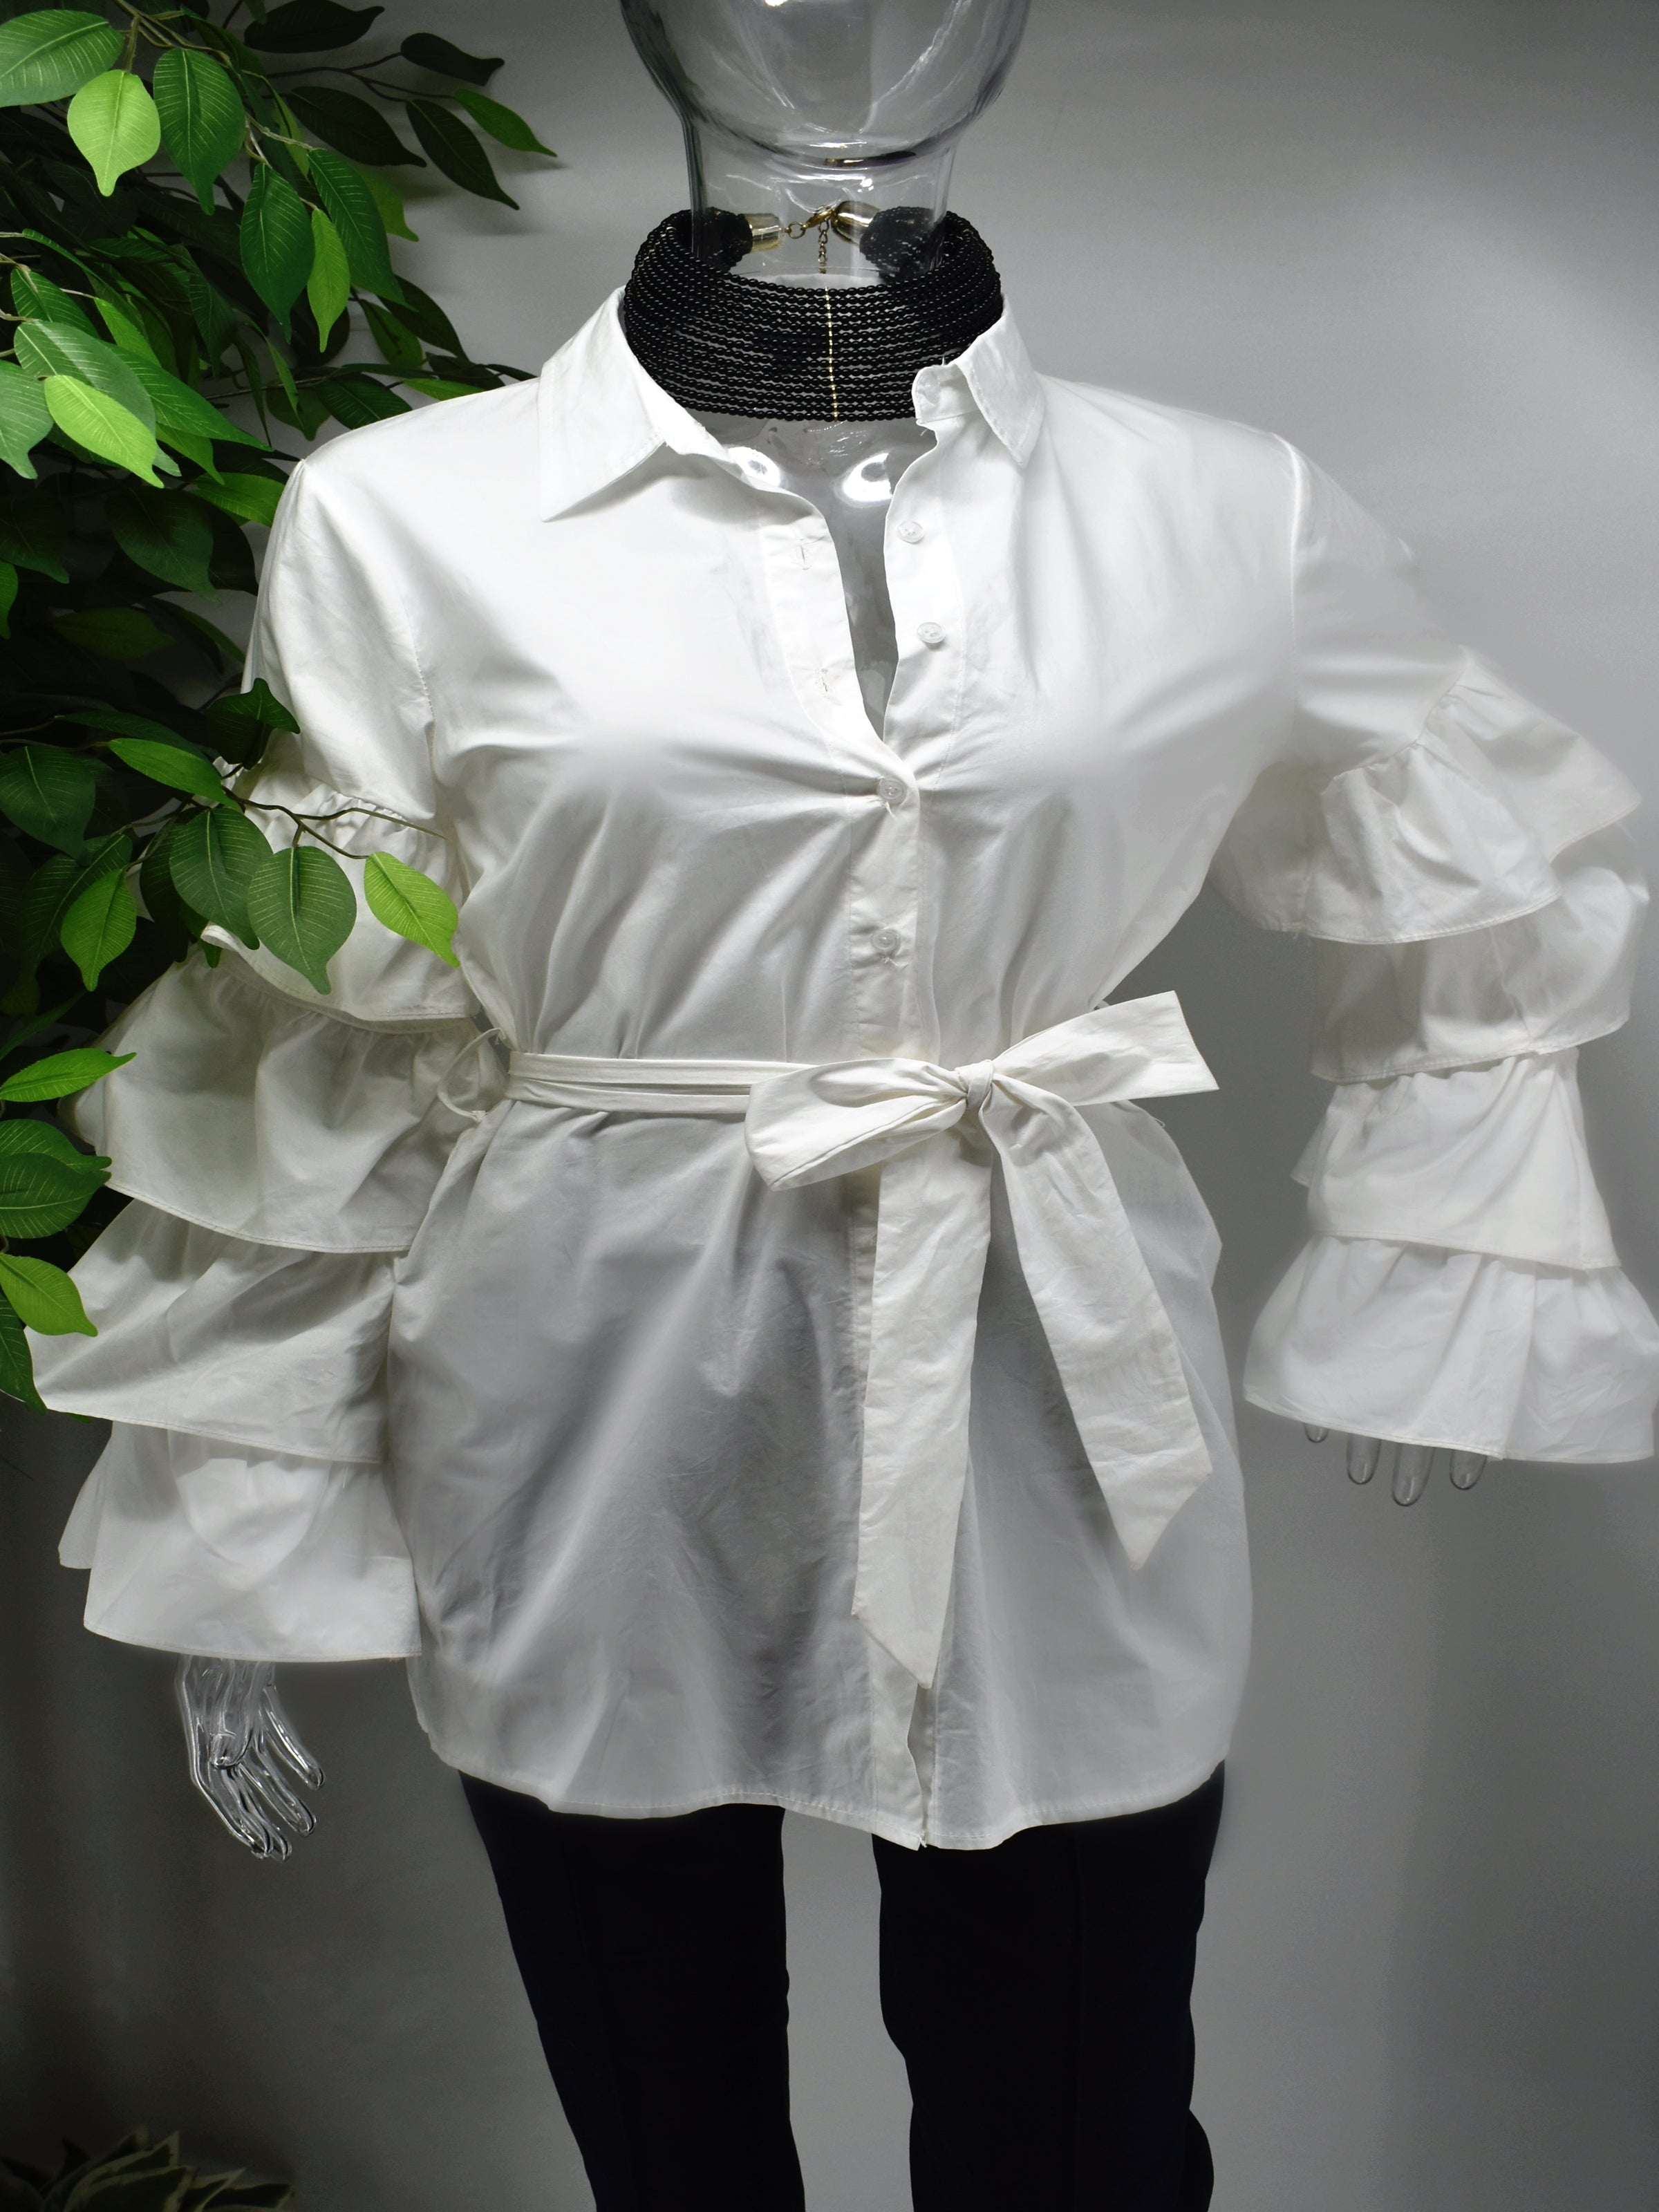 Turn heads and represent how fashionably fierce you are in our Brandis White ruffle sleeve shirt top.  Our Brandis is a long button front shirt top with a traditional collar and a romantic bold four tiered ruffle sleeve.